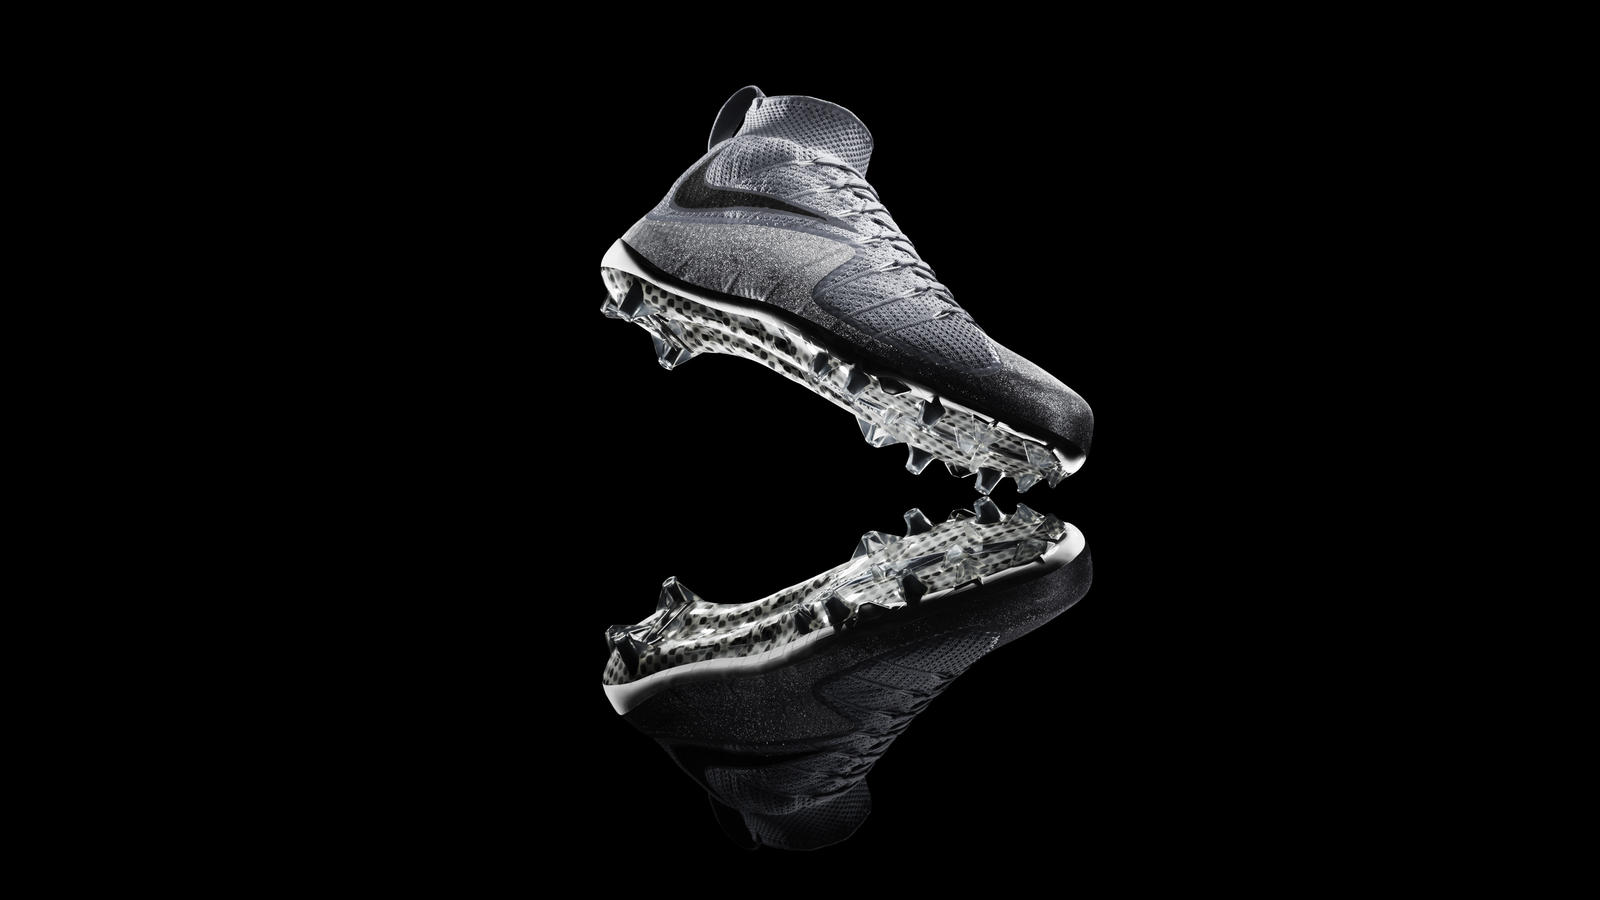 nike vapor untouchable cleat merges speed strength and sustainability